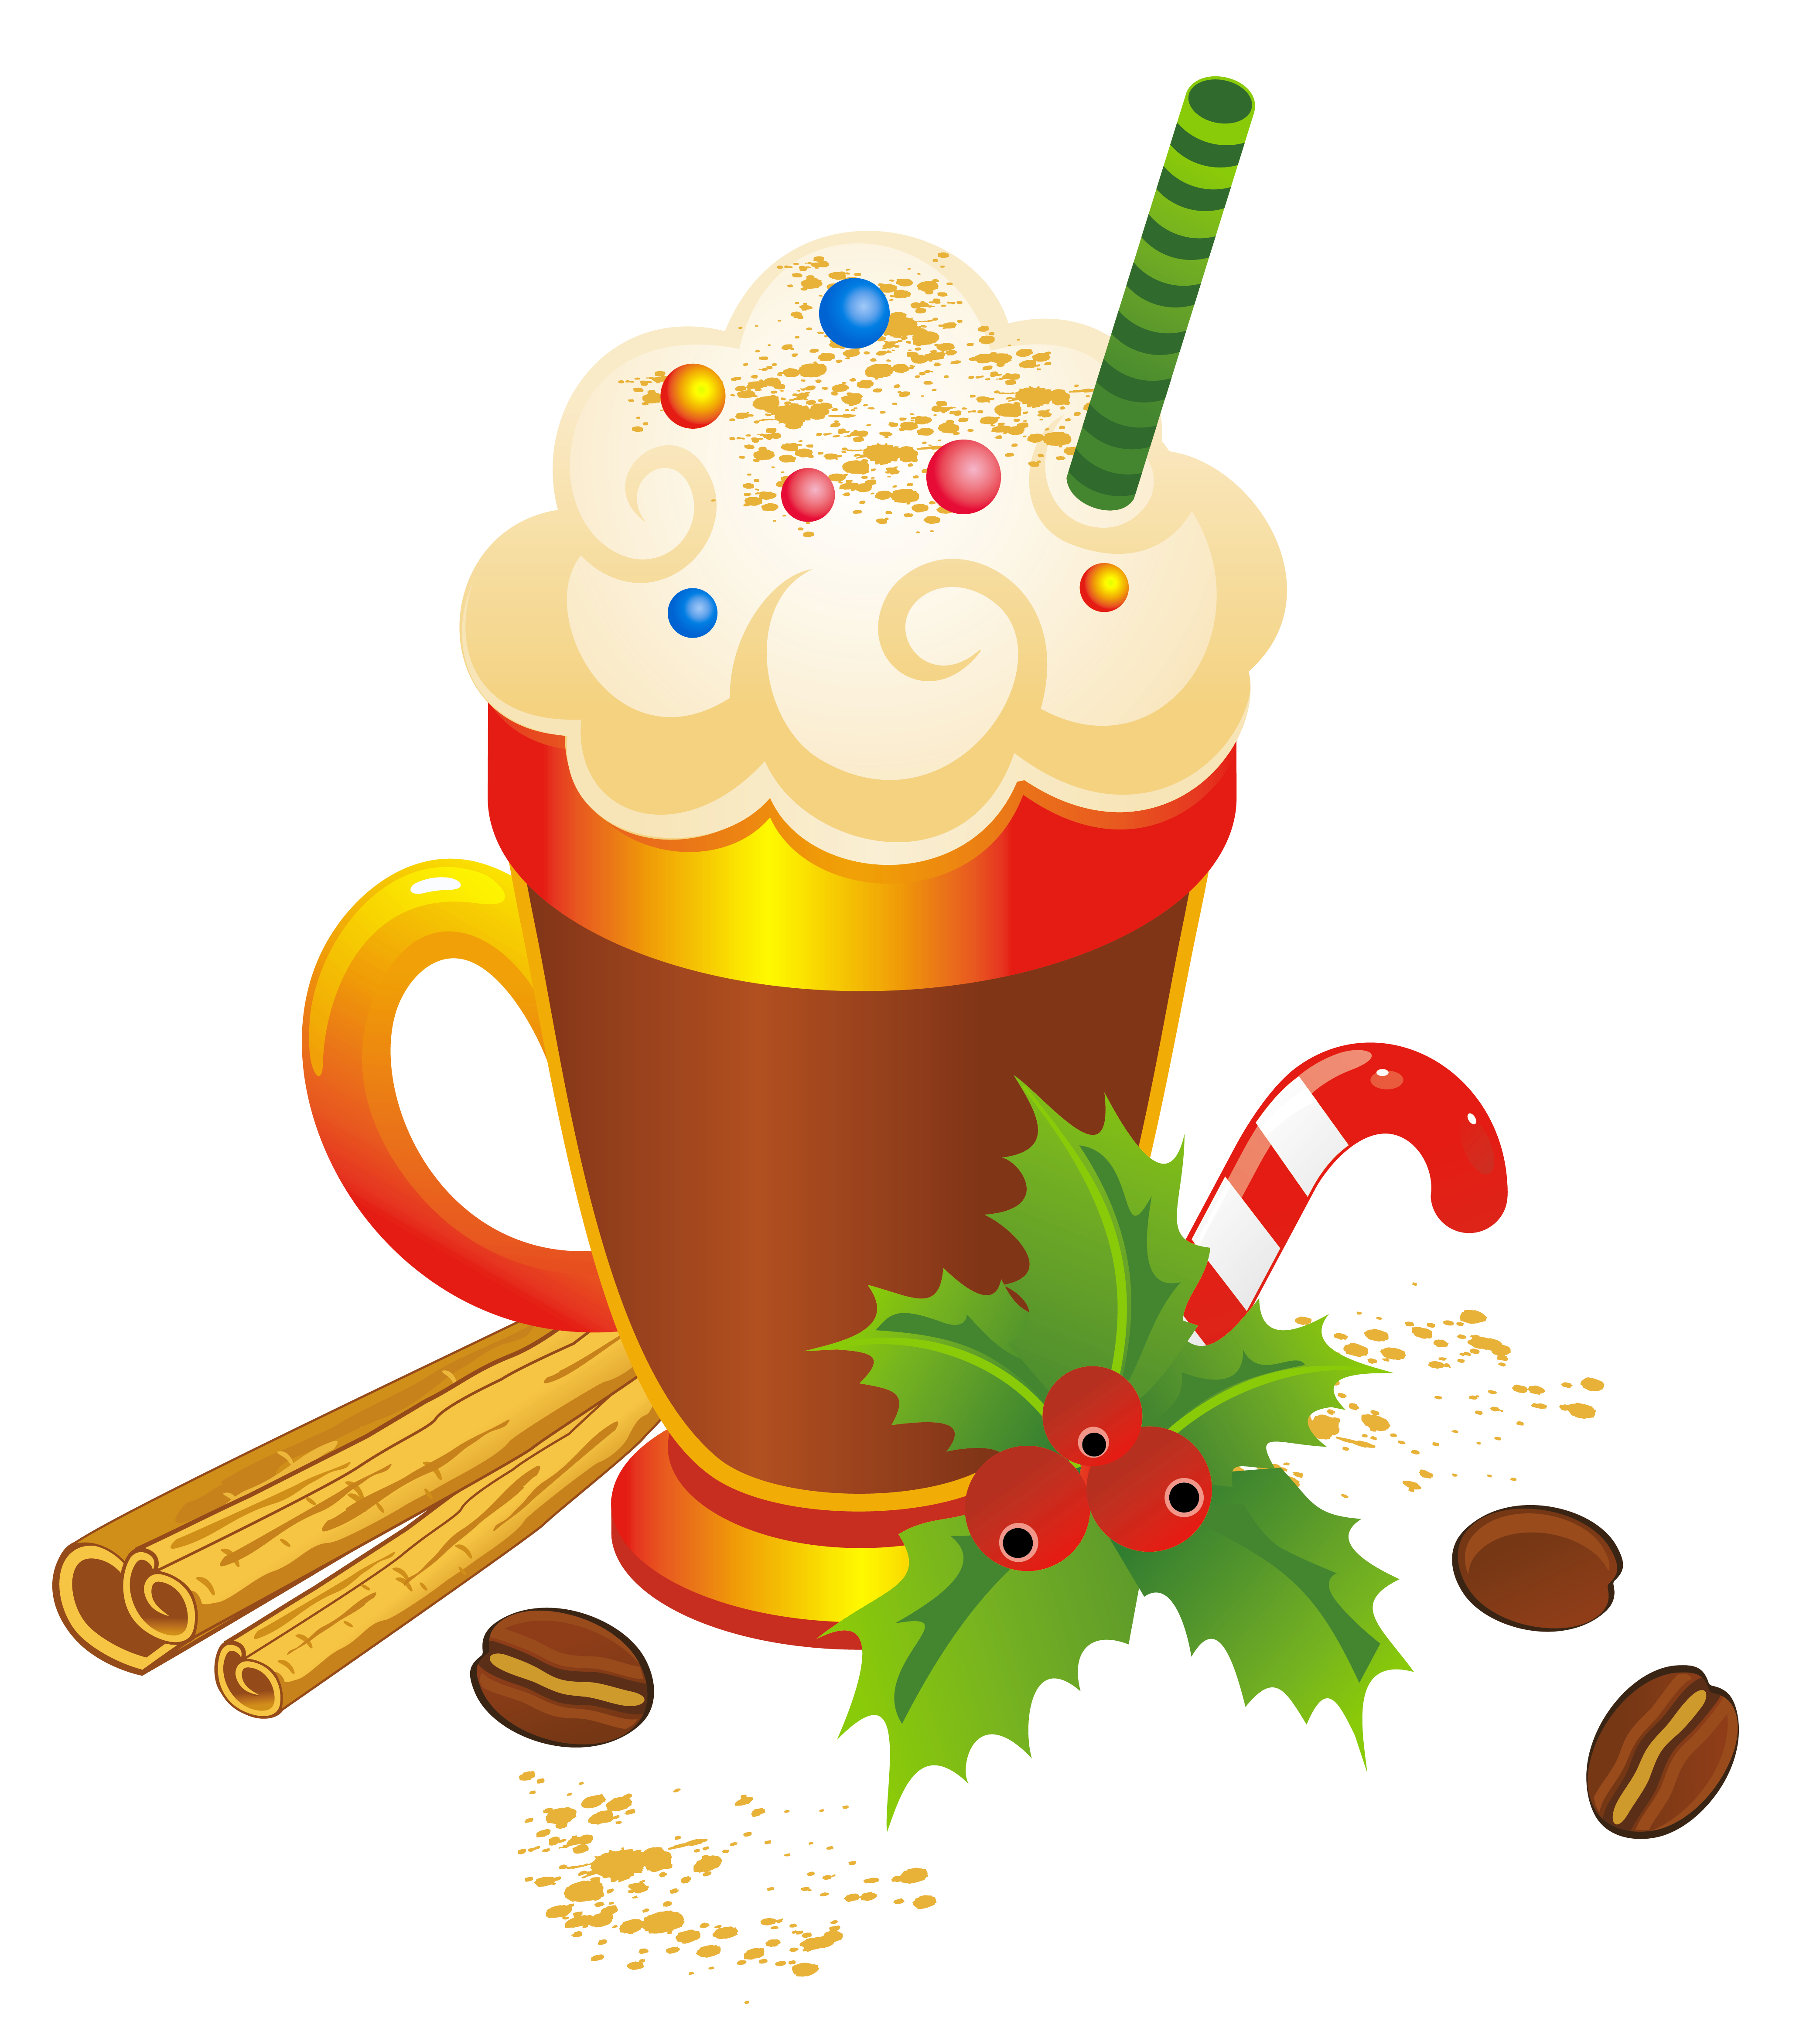 Coffee cup clipart christmas. Eggnog transparent png gallery